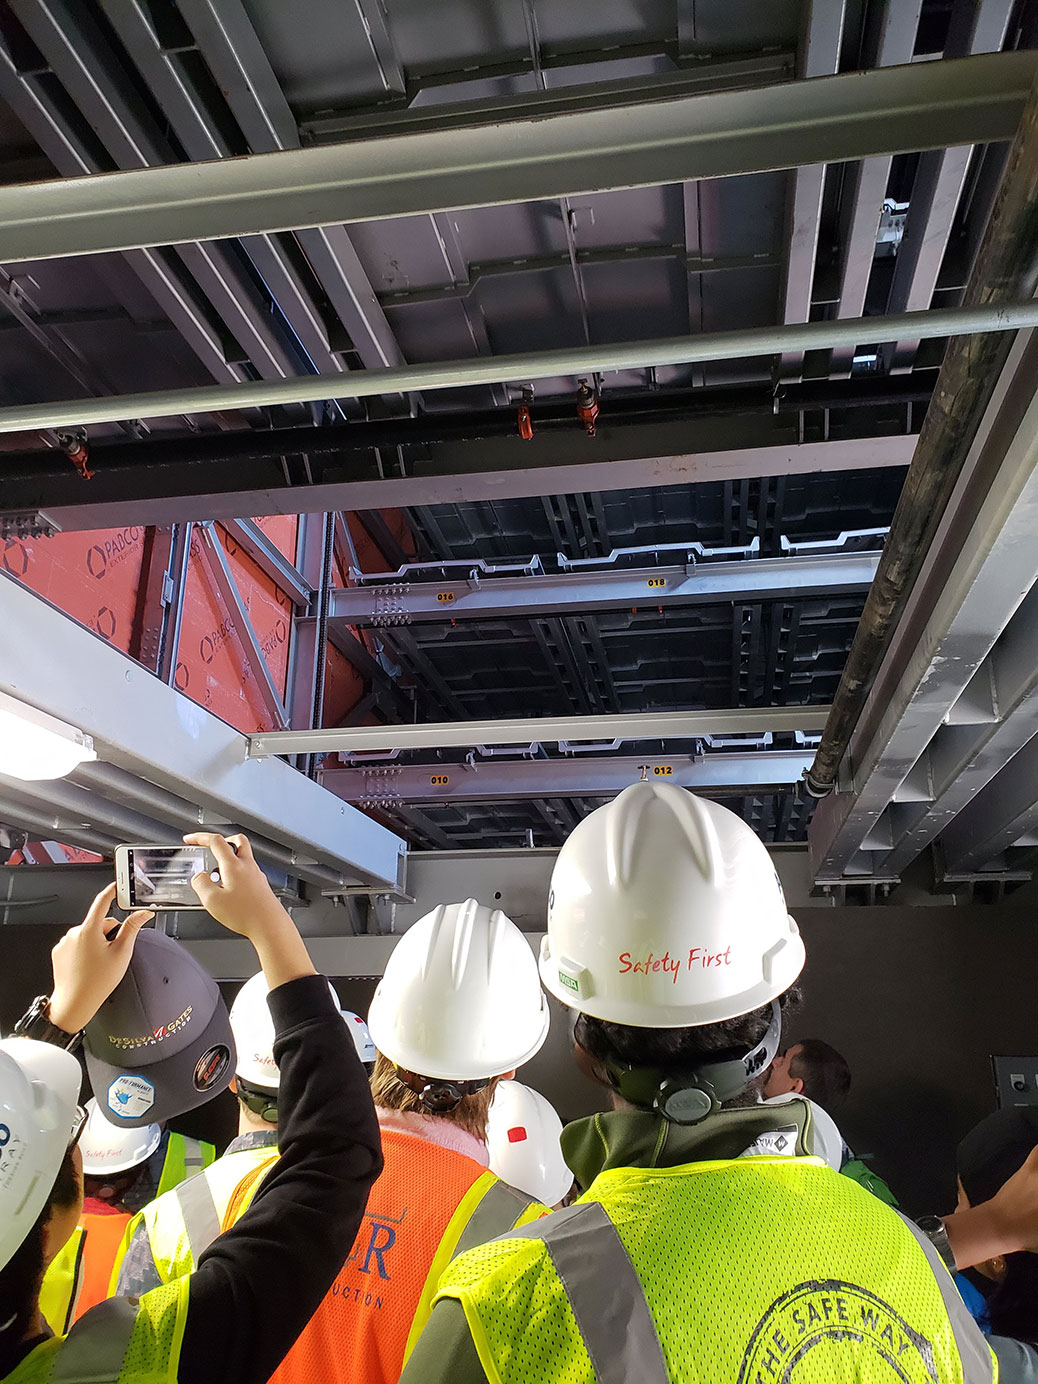 People in hard hats and safety vests view densely packed parking spaces in an automated parking structure